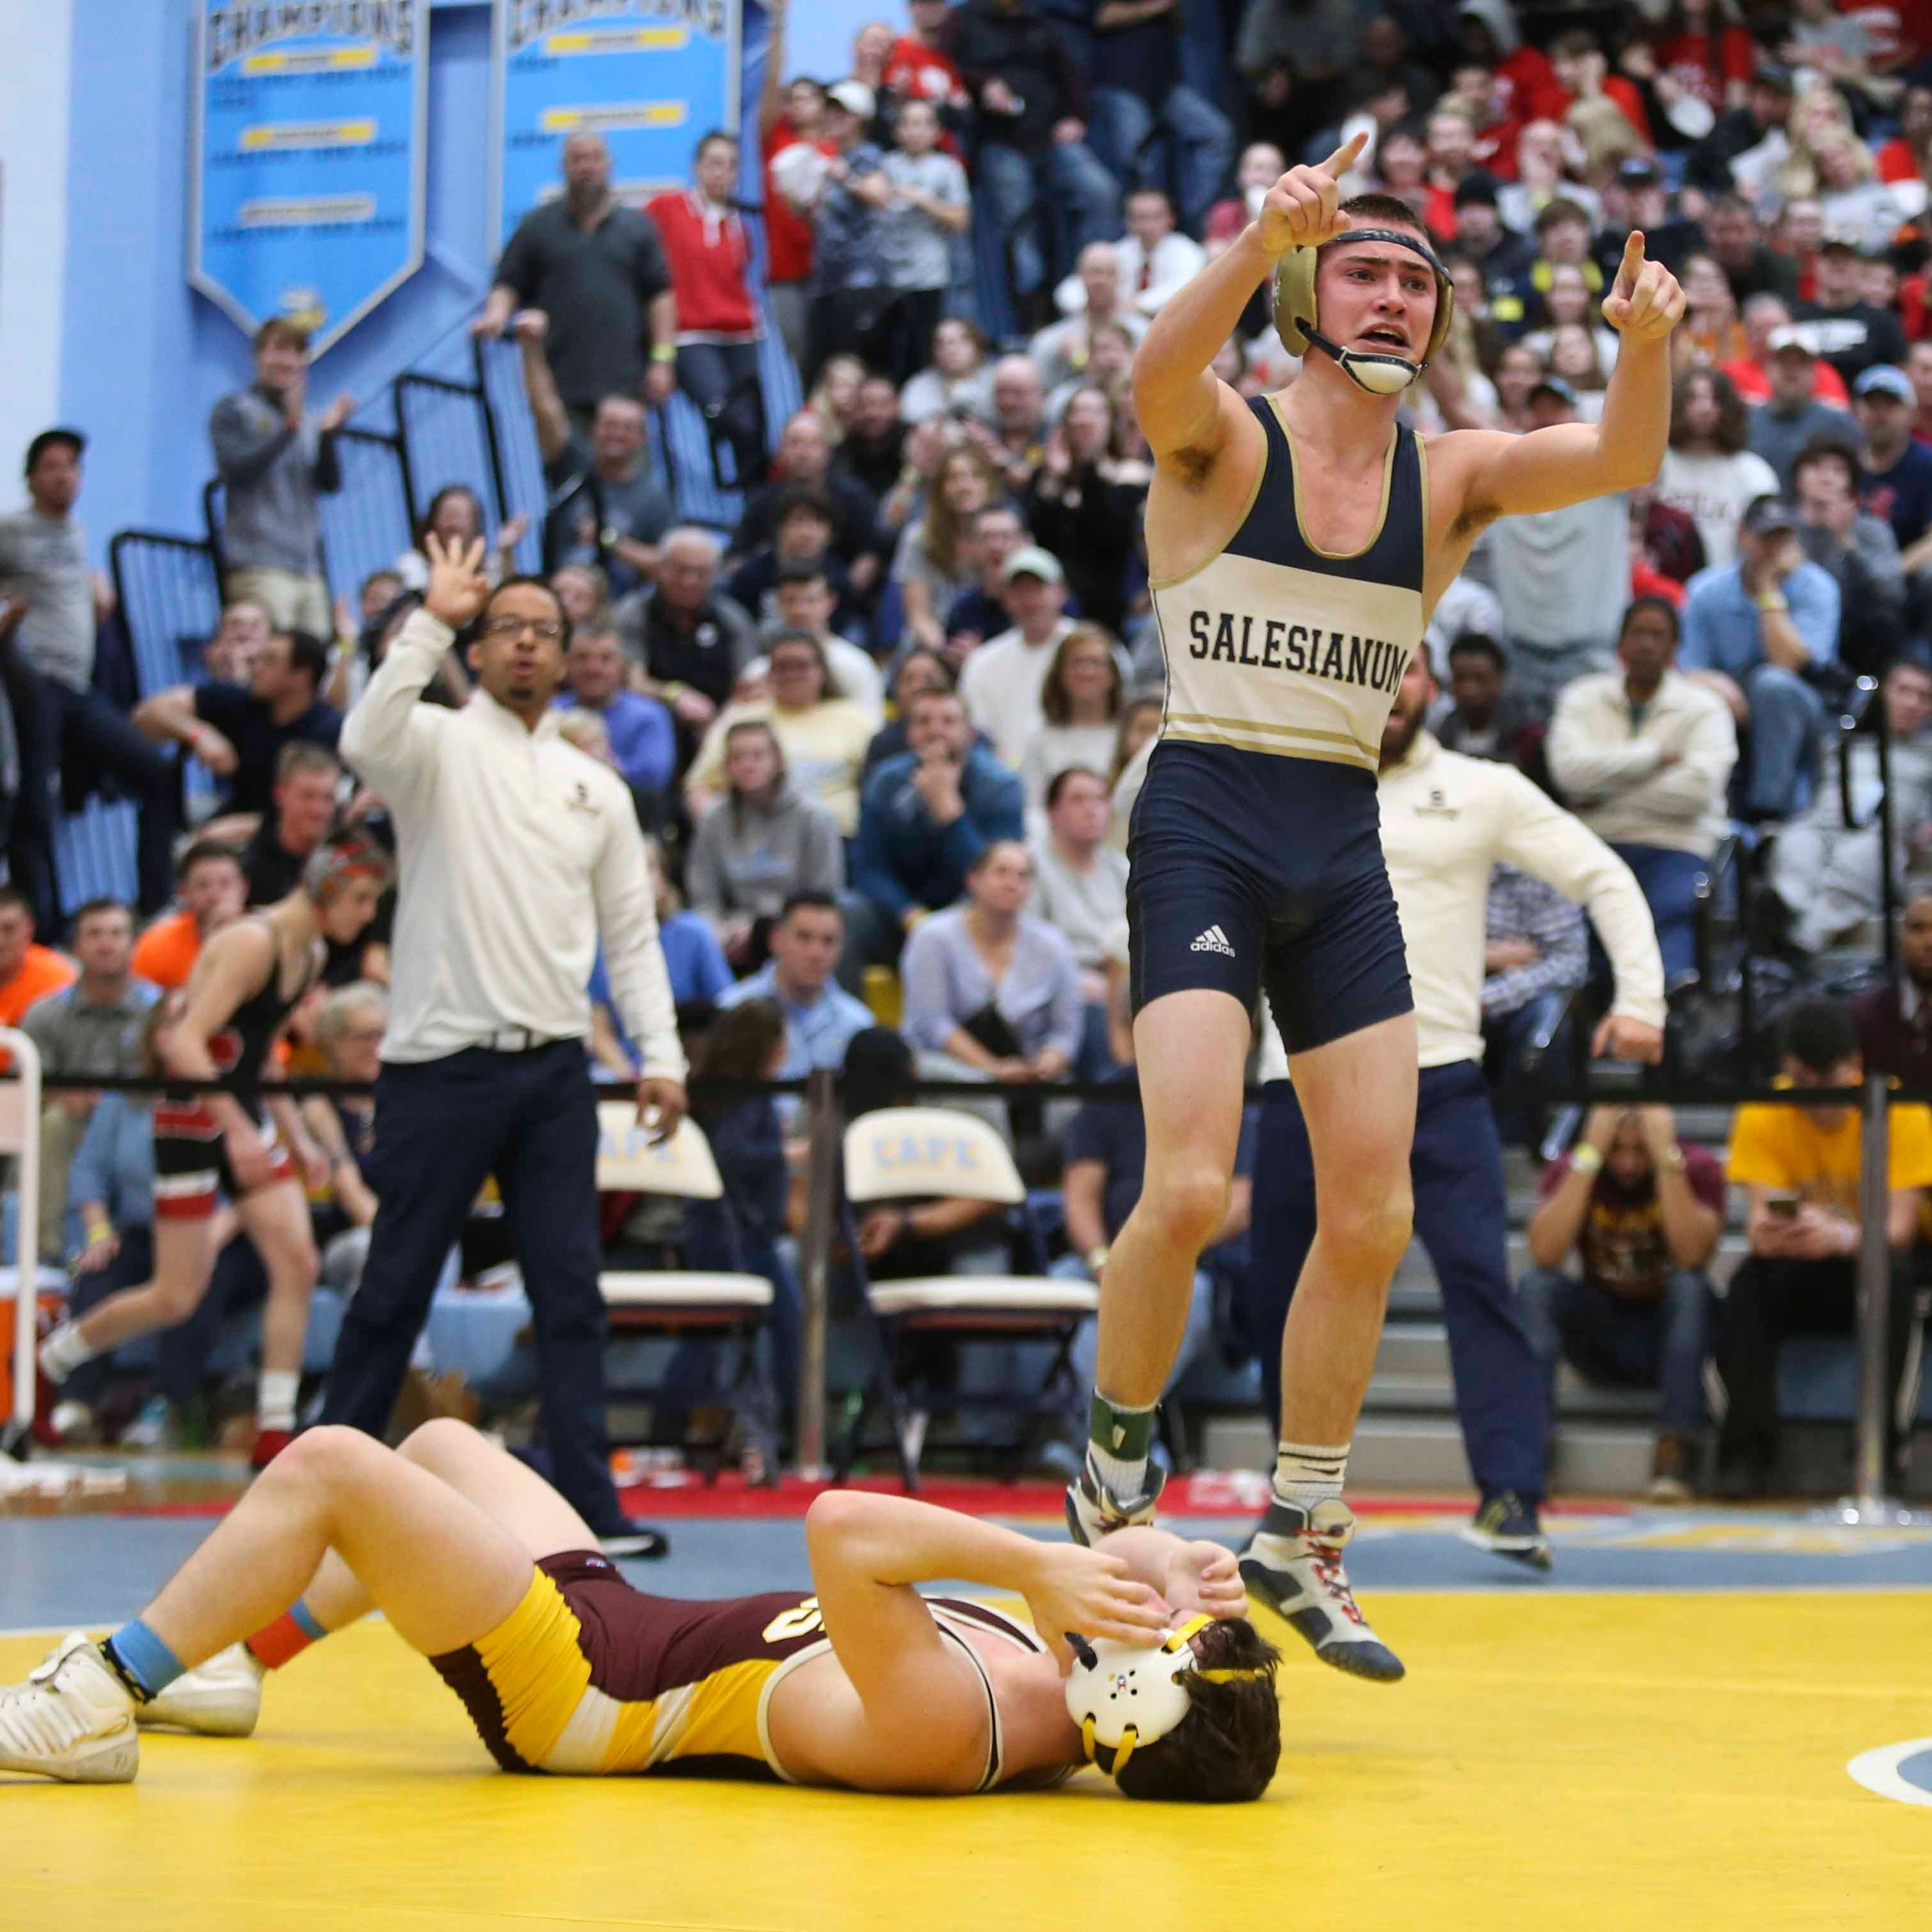 Delaware Wrestler of the Year Zach Spence learned a key early lesson